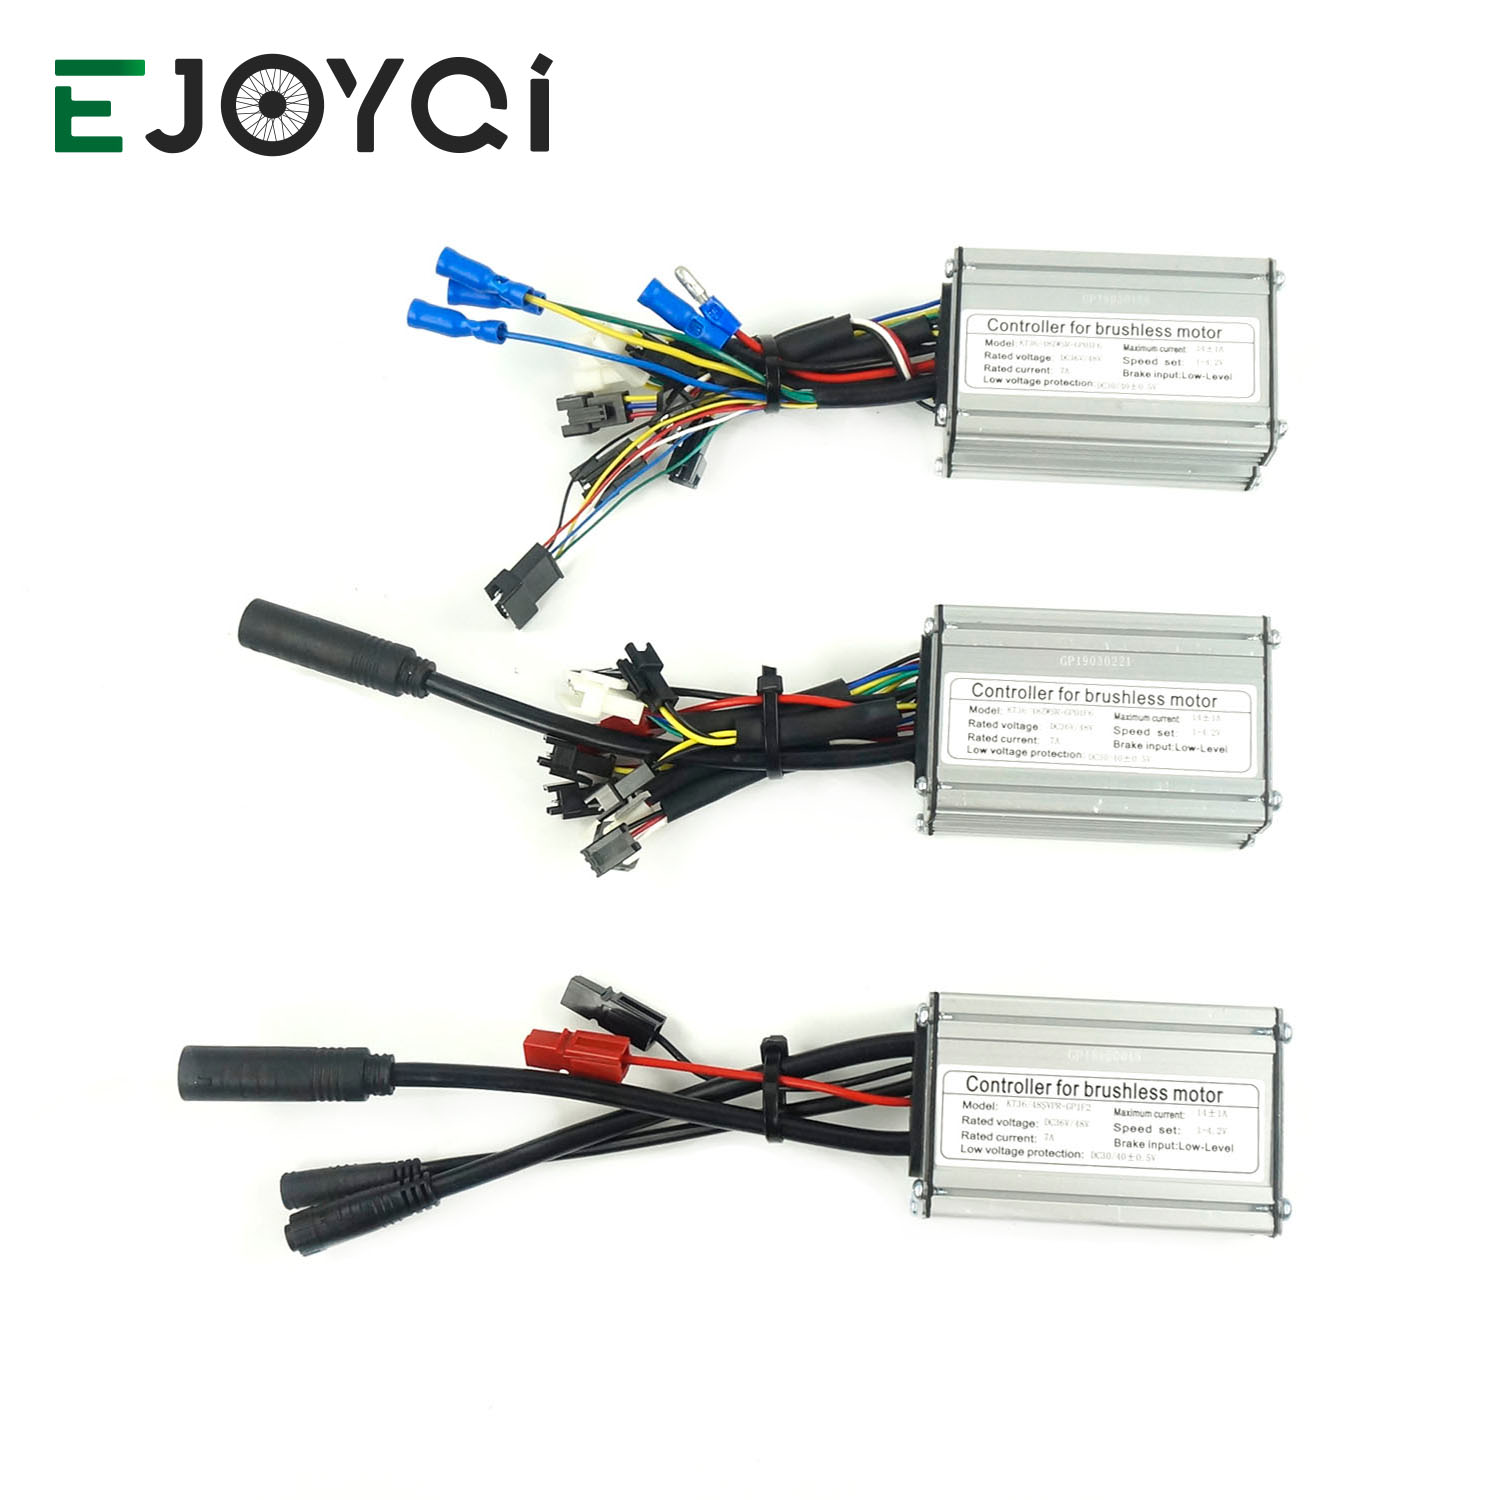 EJOYQI KT Ebike Controller 36V 48V 14A 250W 6 Mosfets Brushless Controller For Electric Bicycle Conversion Kit